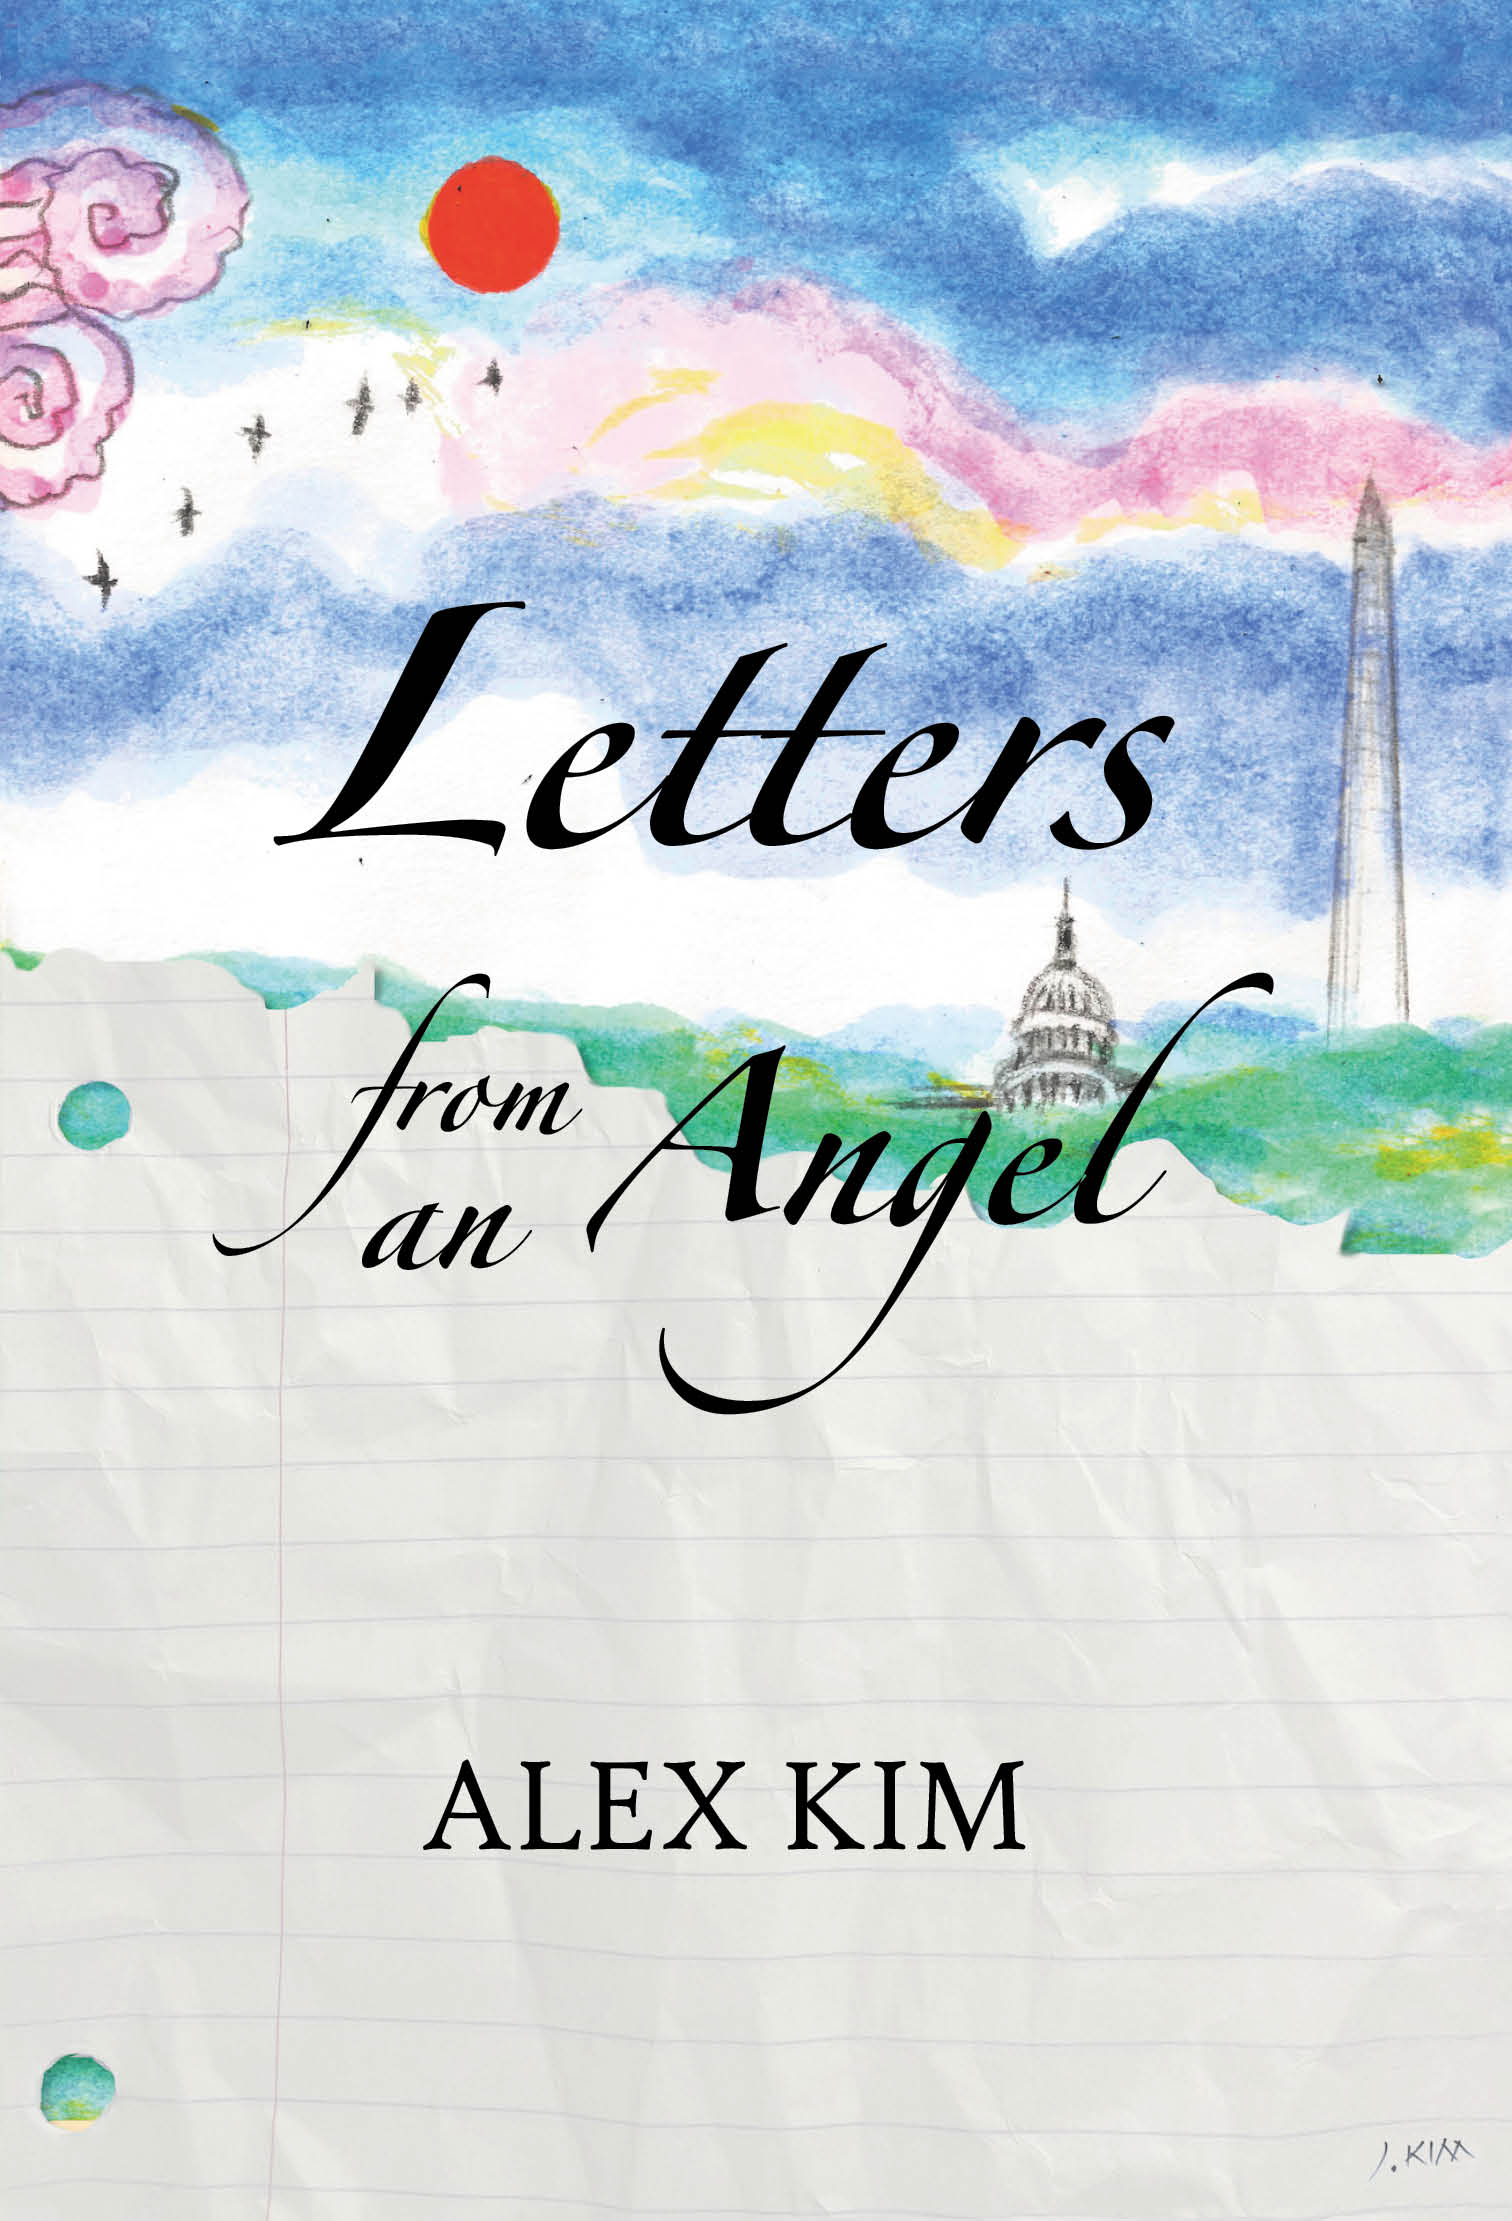 Letters from an angel